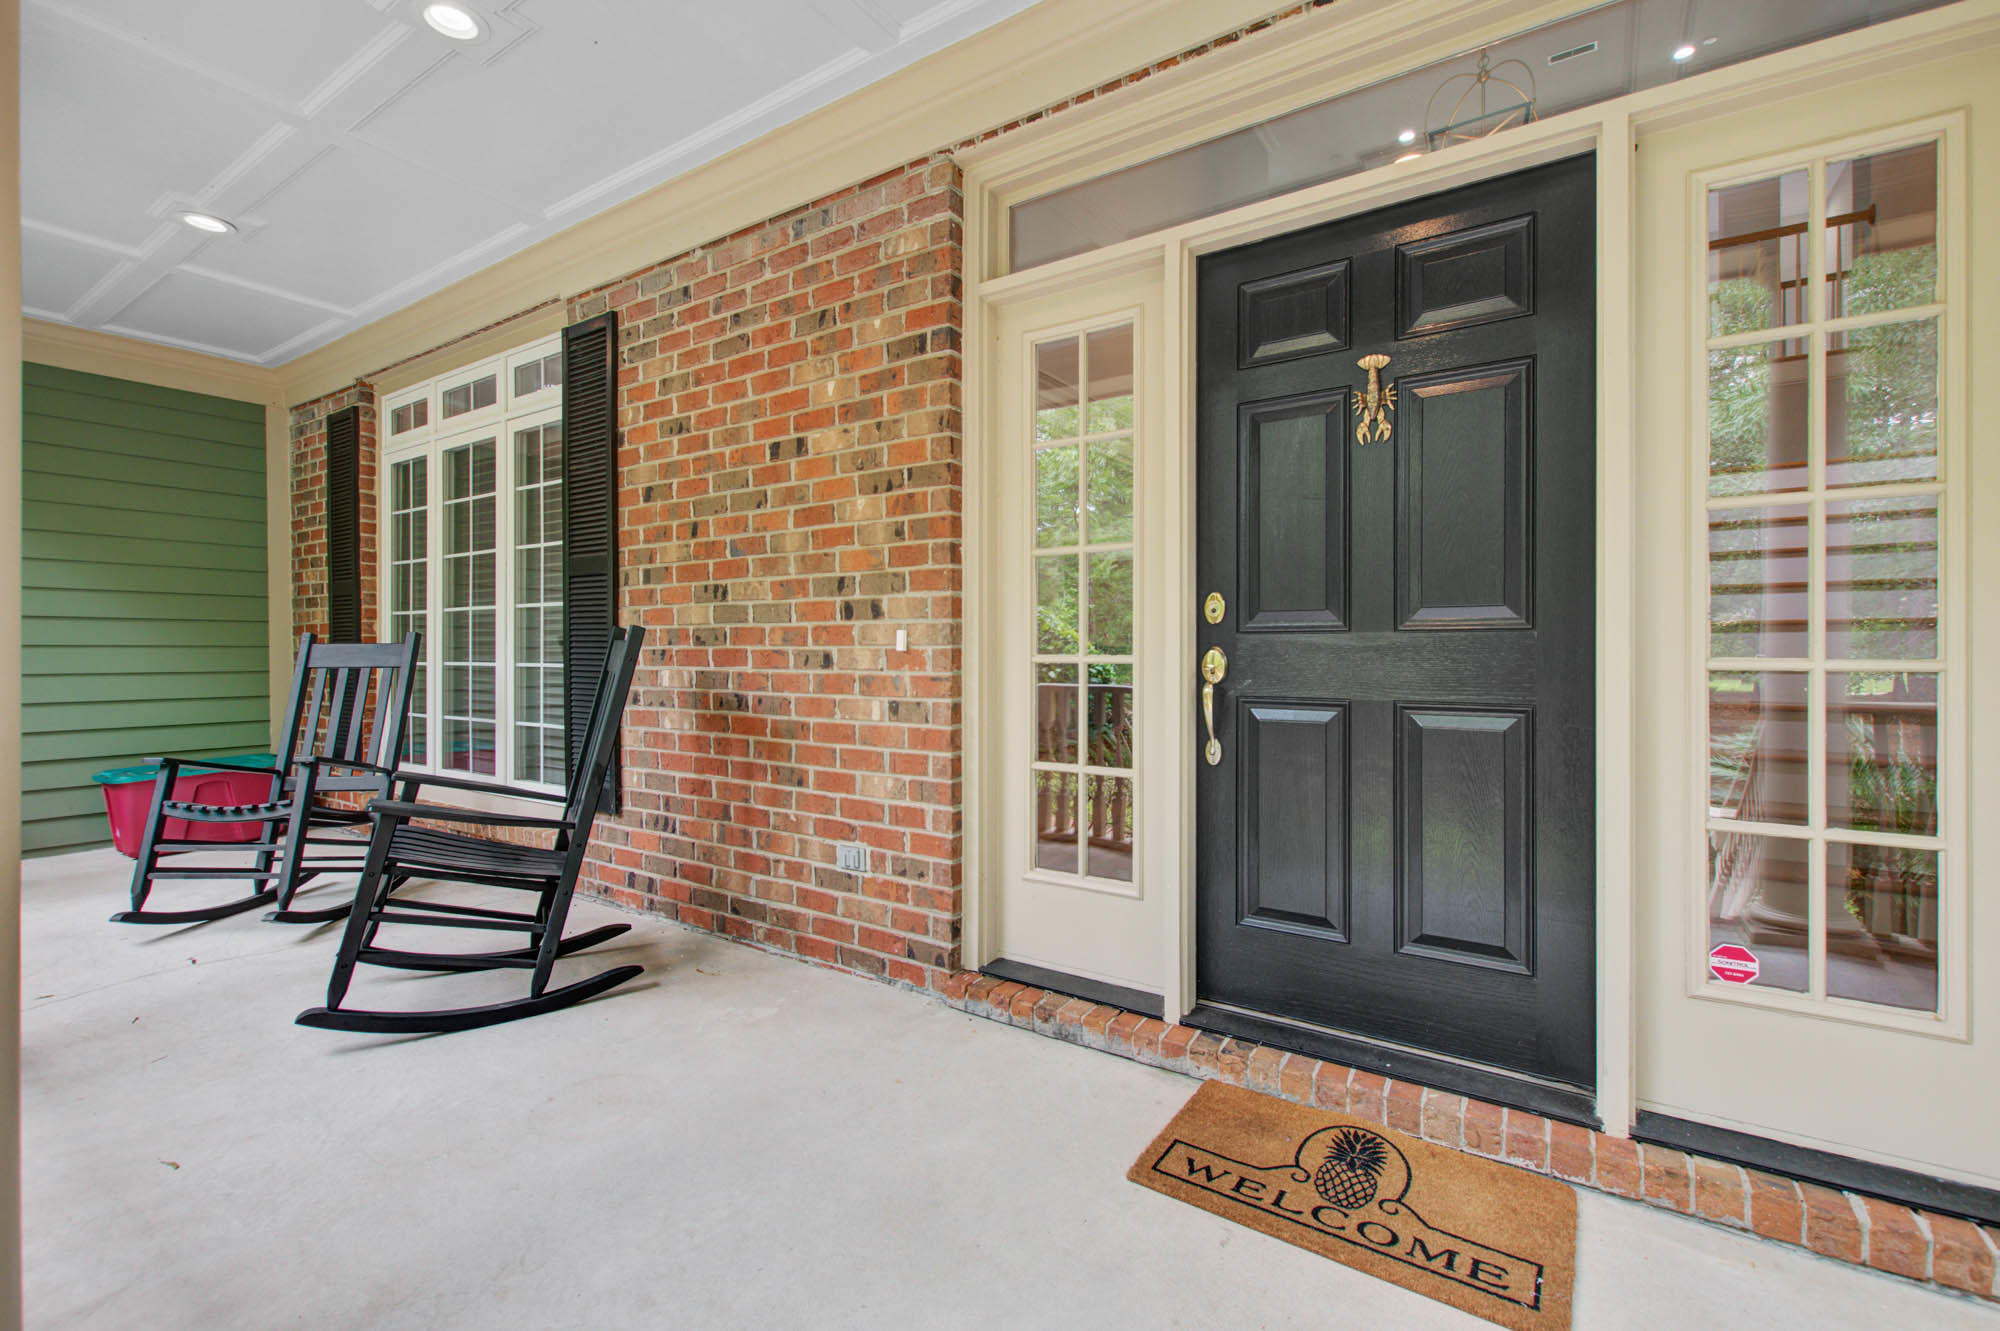 Dunes West Homes For Sale - 2069 Shell Ring, Mount Pleasant, SC - 22